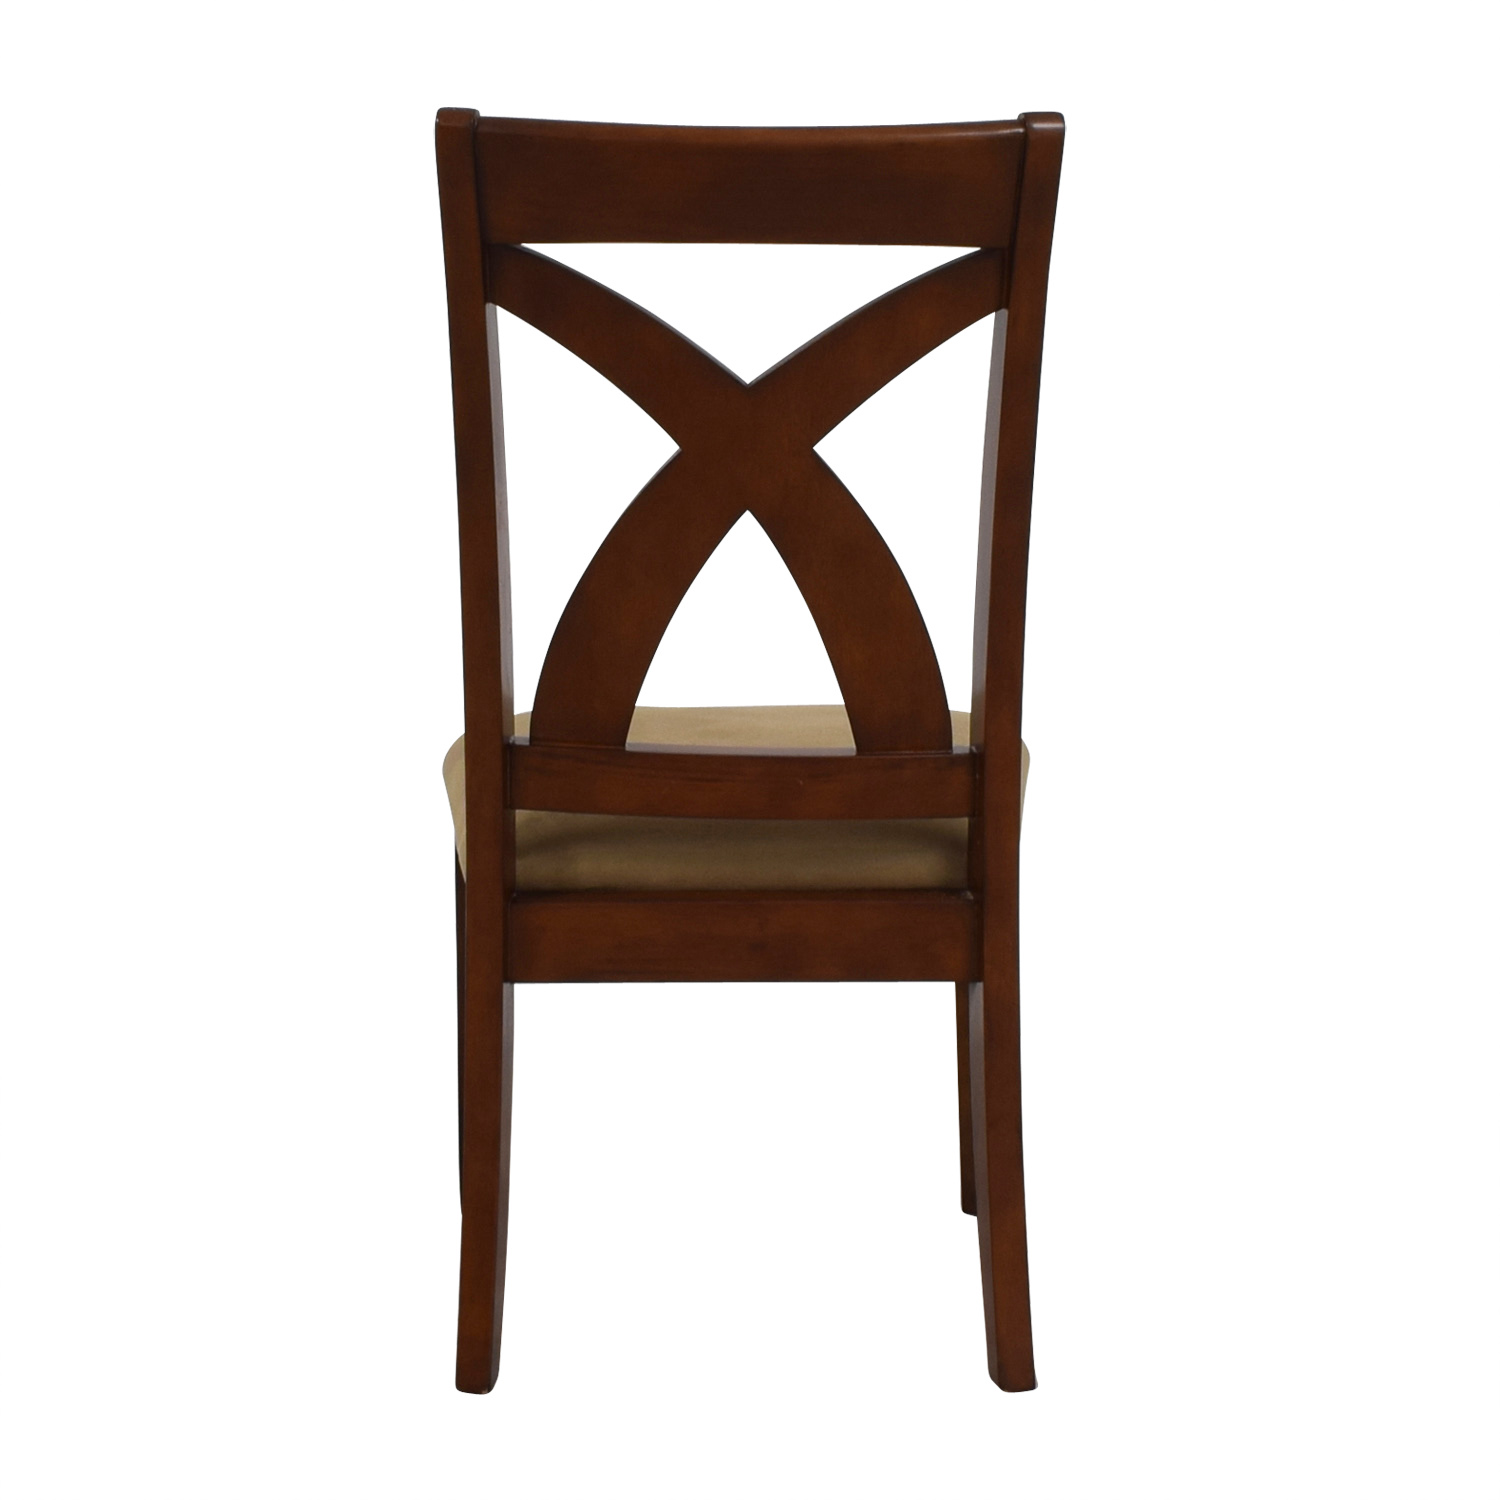 Cross Back Wood Chair with Padded Seat price